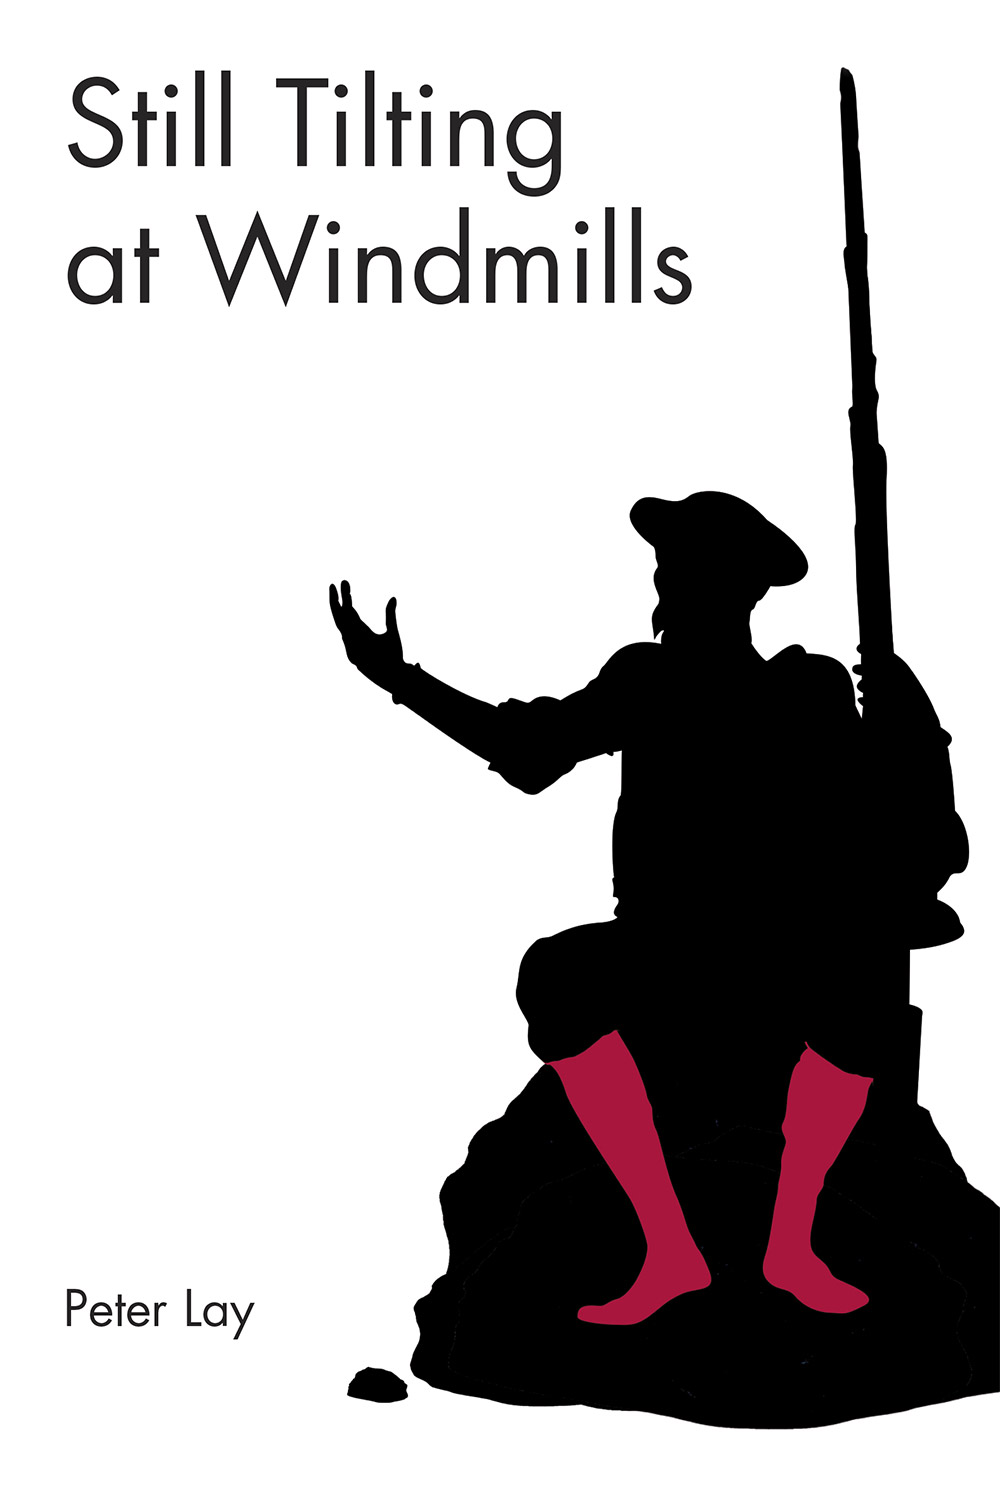 Still Tilting at Windmills Book Cover Design